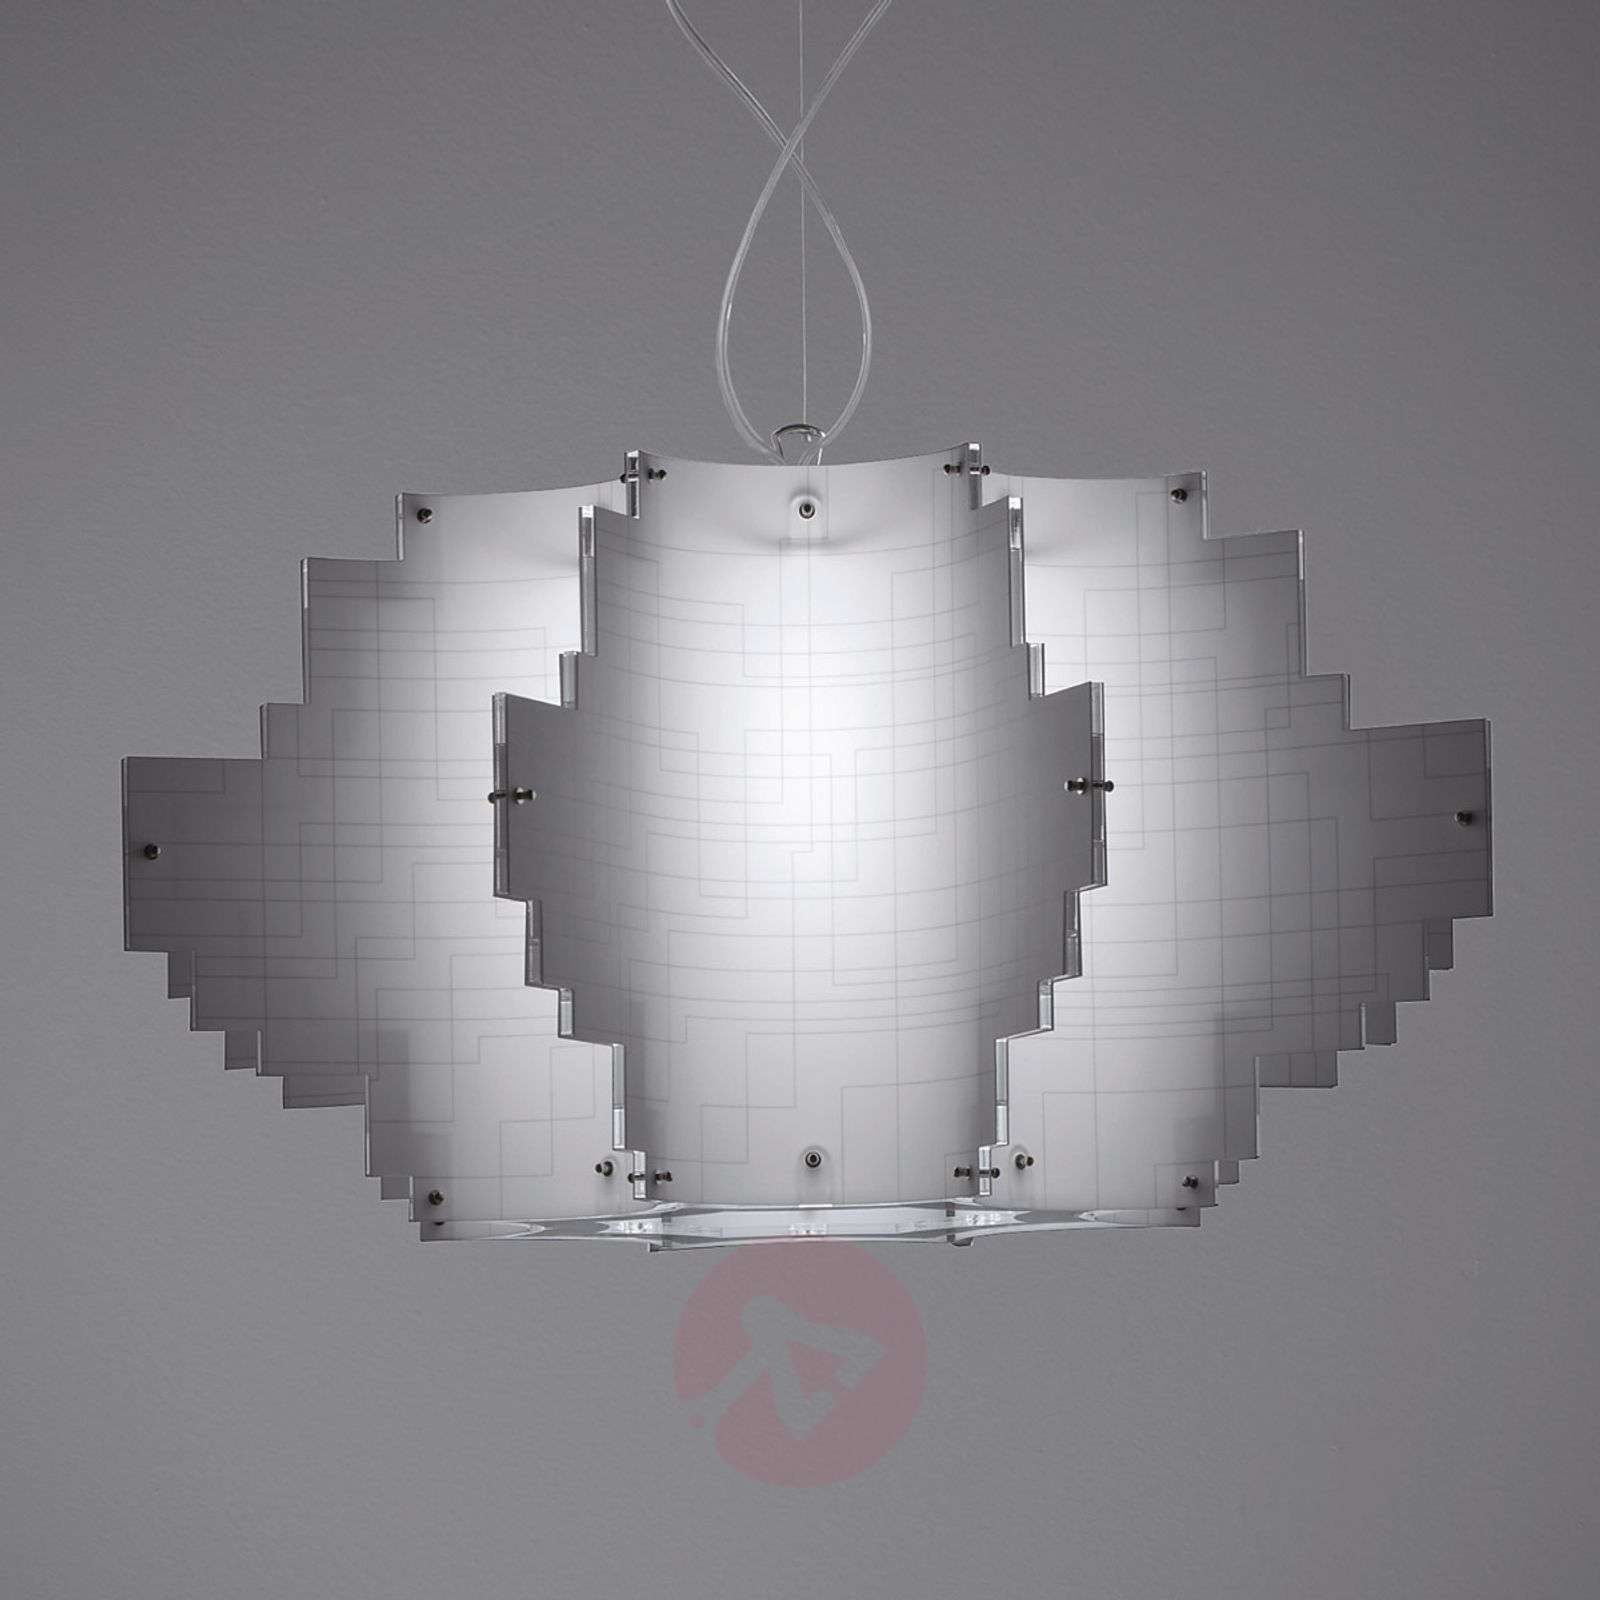 Design-hanglamp Nuvola, wit-1056022-01